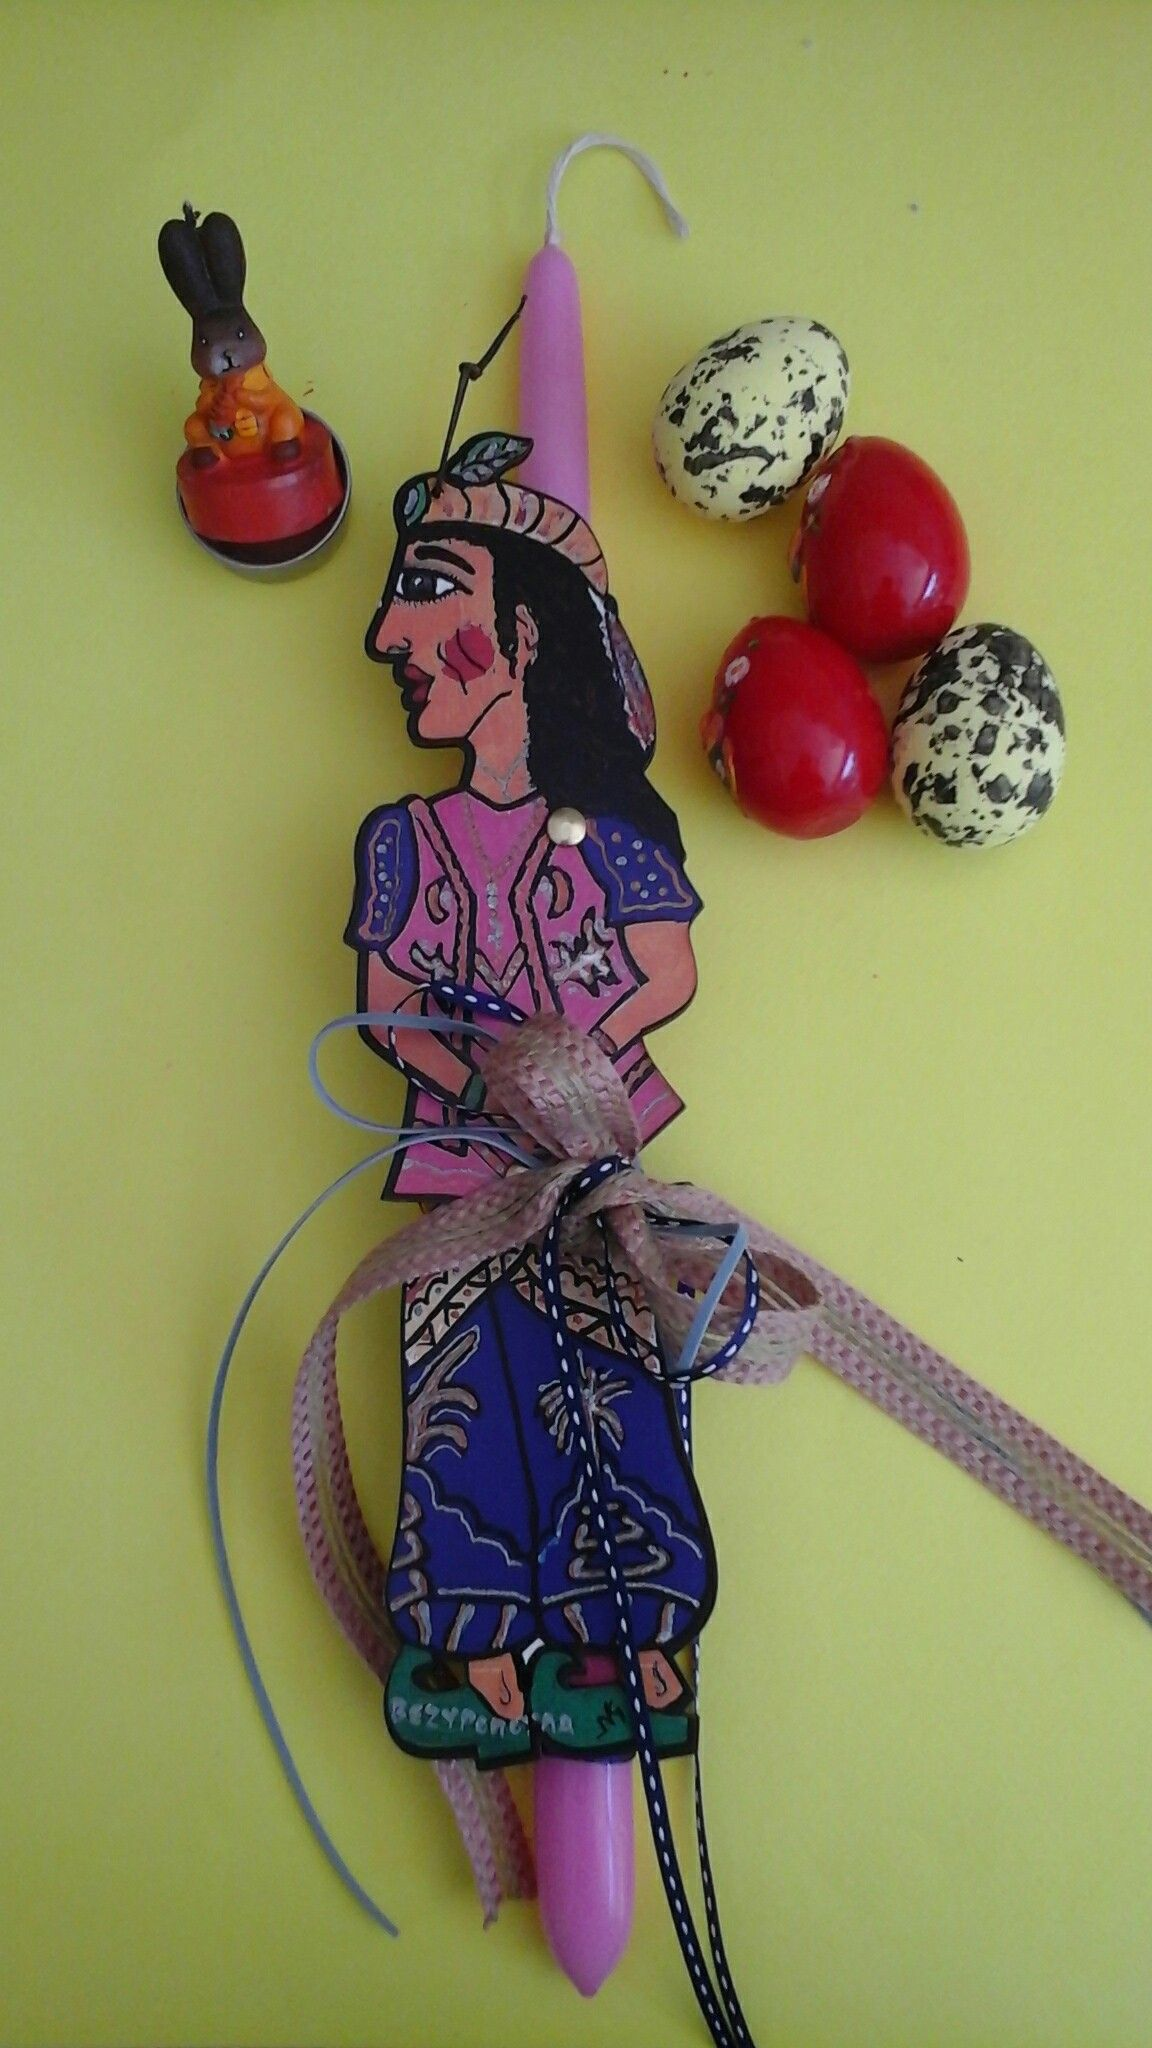 Βεζυροπούλα Christmas ornaments, Holiday decor, Novelty